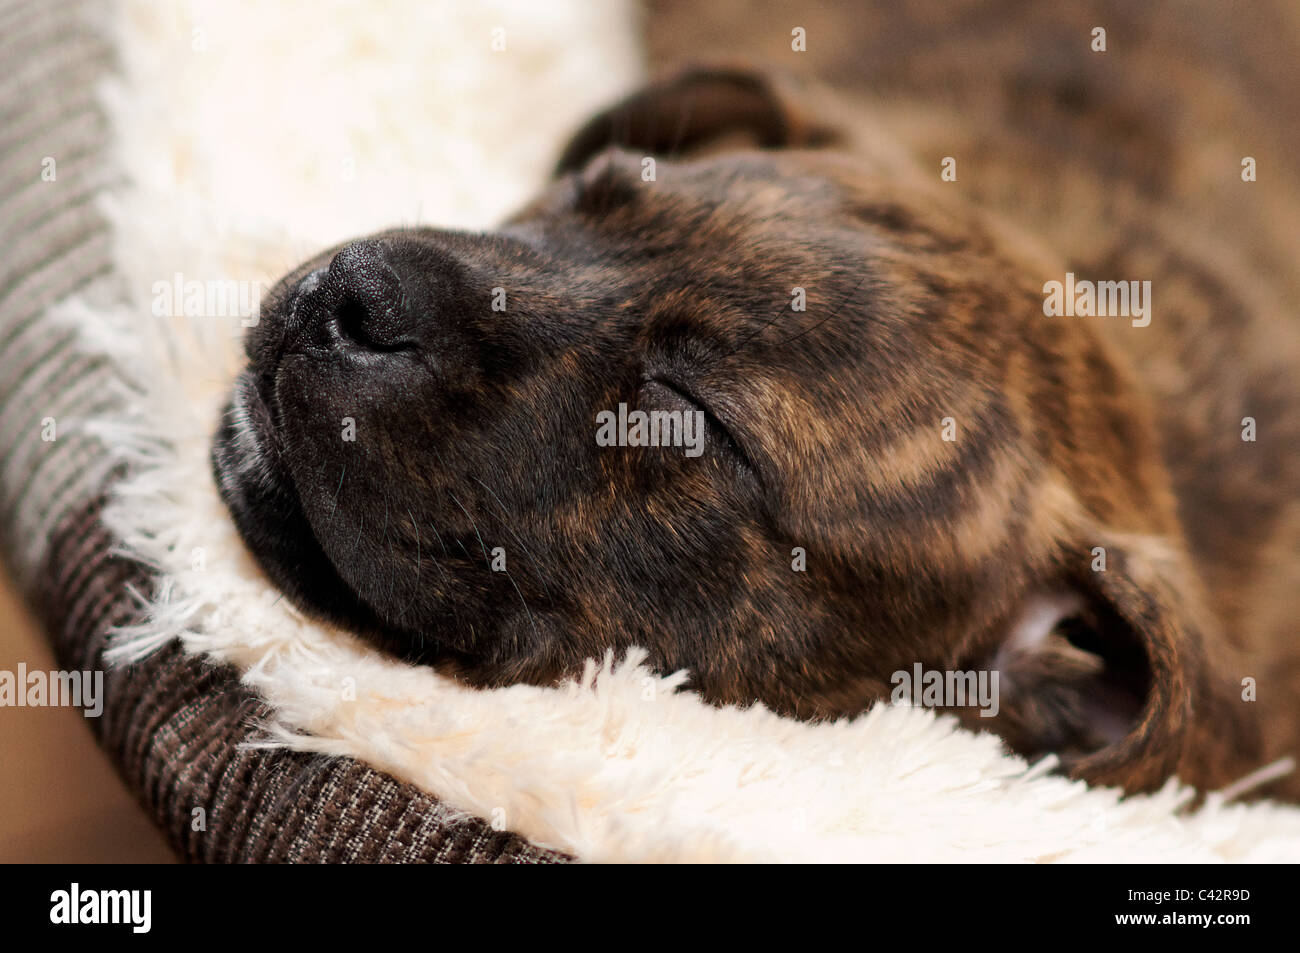 Puppy Staffy Sleeping - Stock Image